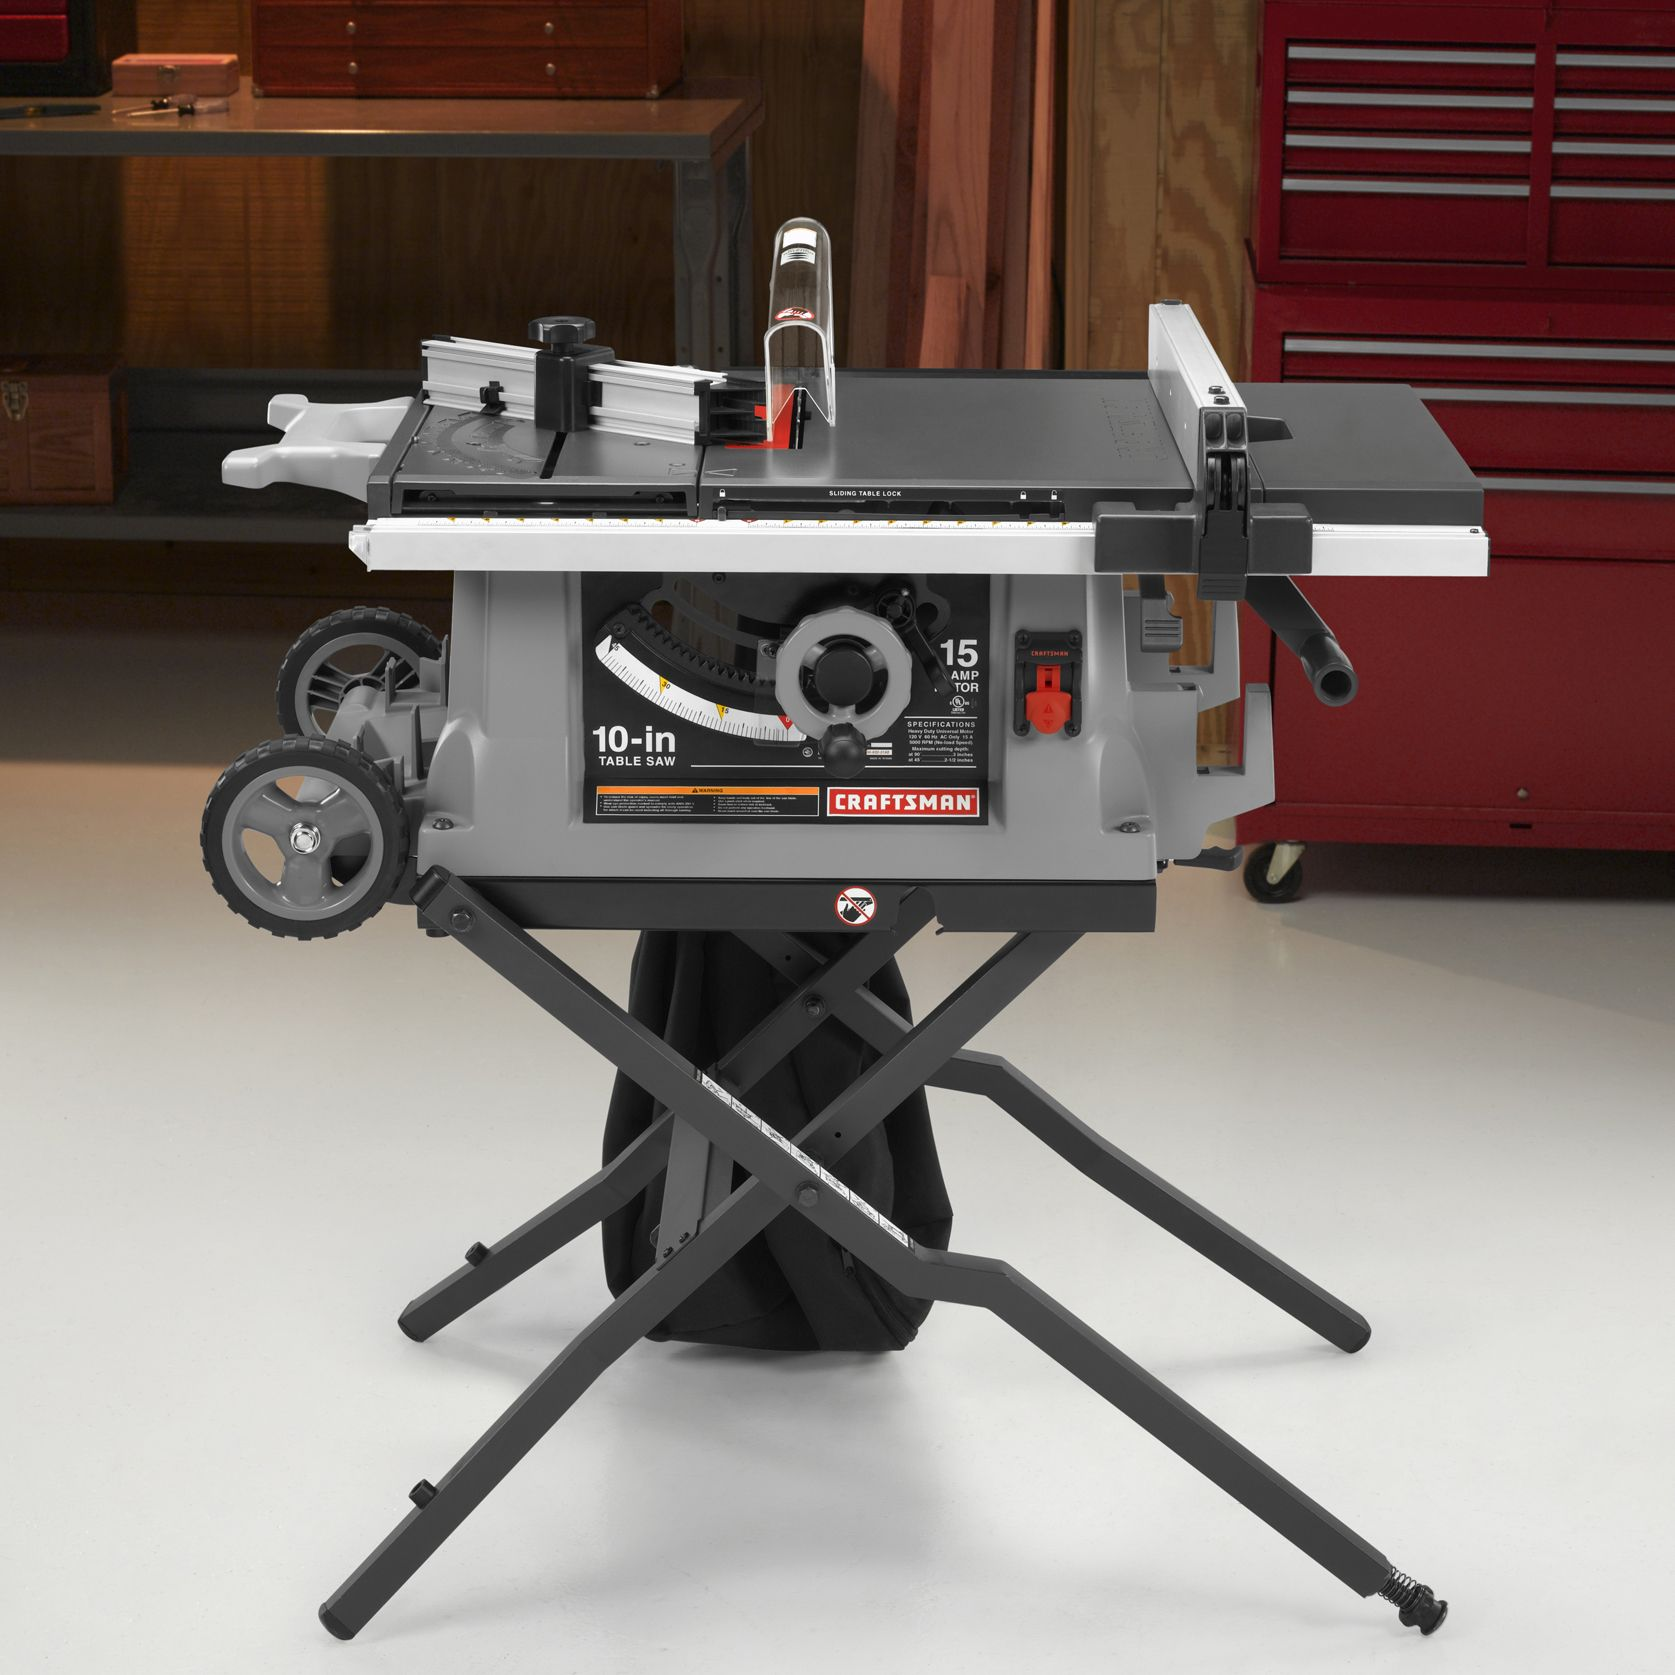 medium resolution of spin prod 242069101 wid 200 hei 250 craftsman table saw parts model 315218060